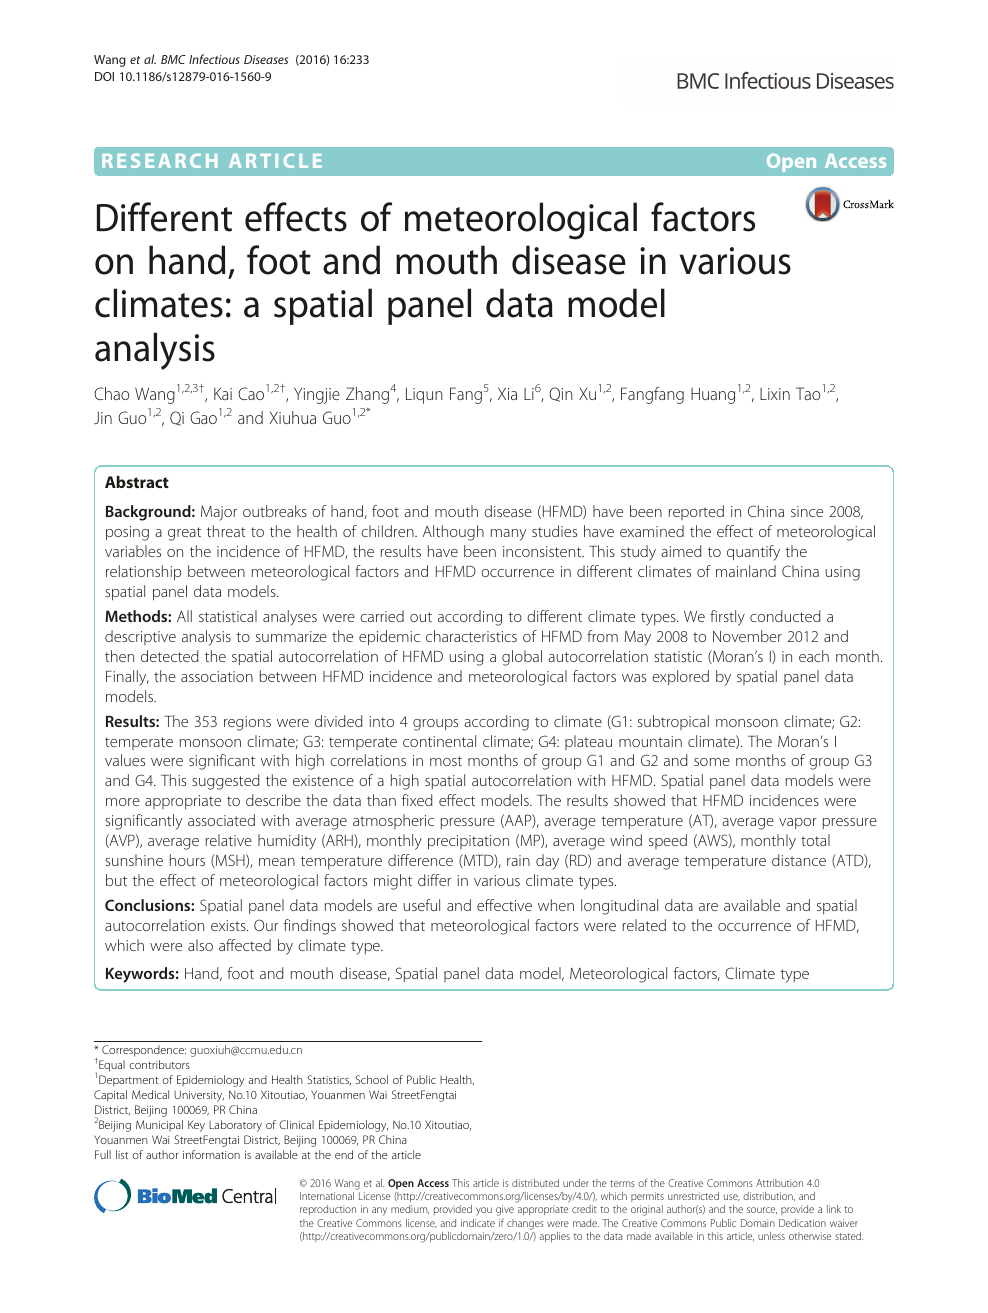 Different effects of meteorological factors on hand, foot